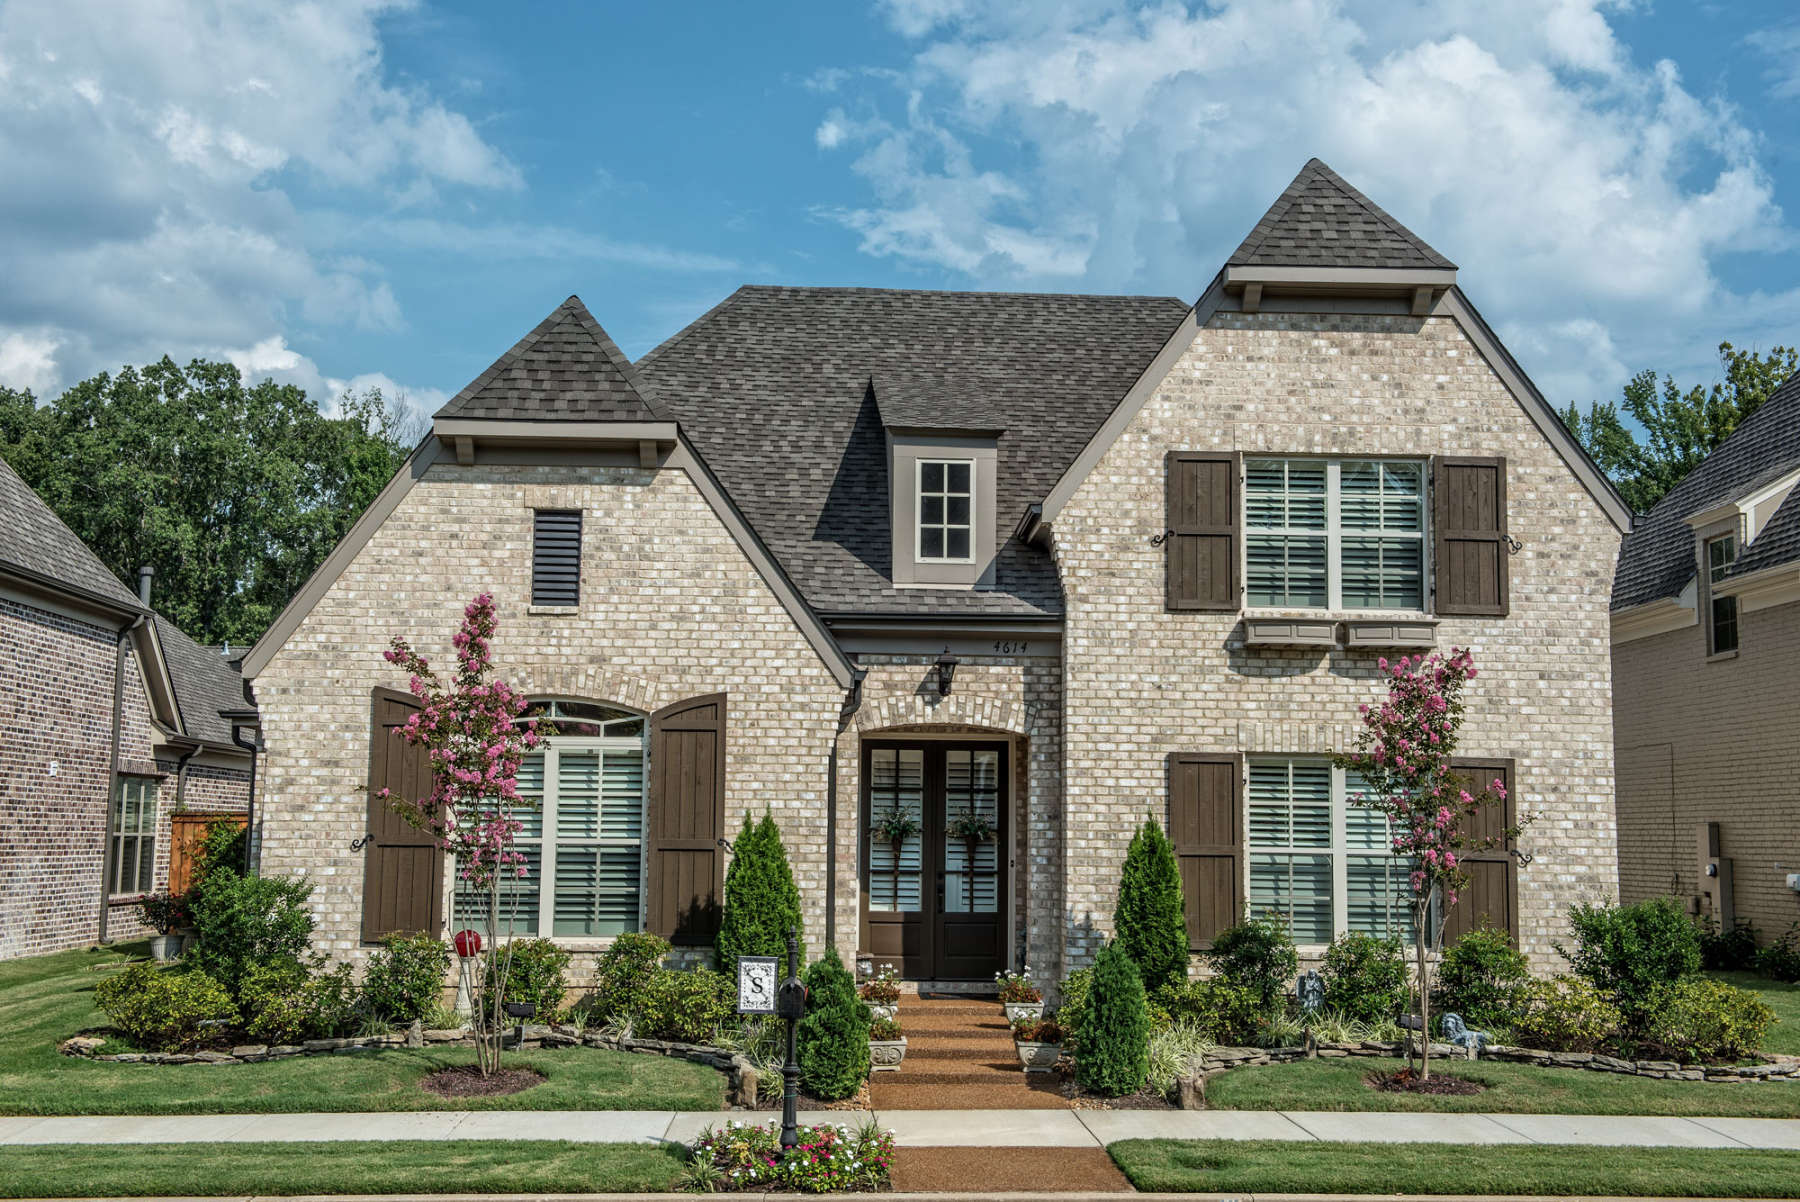 Collierville Homes for Sale